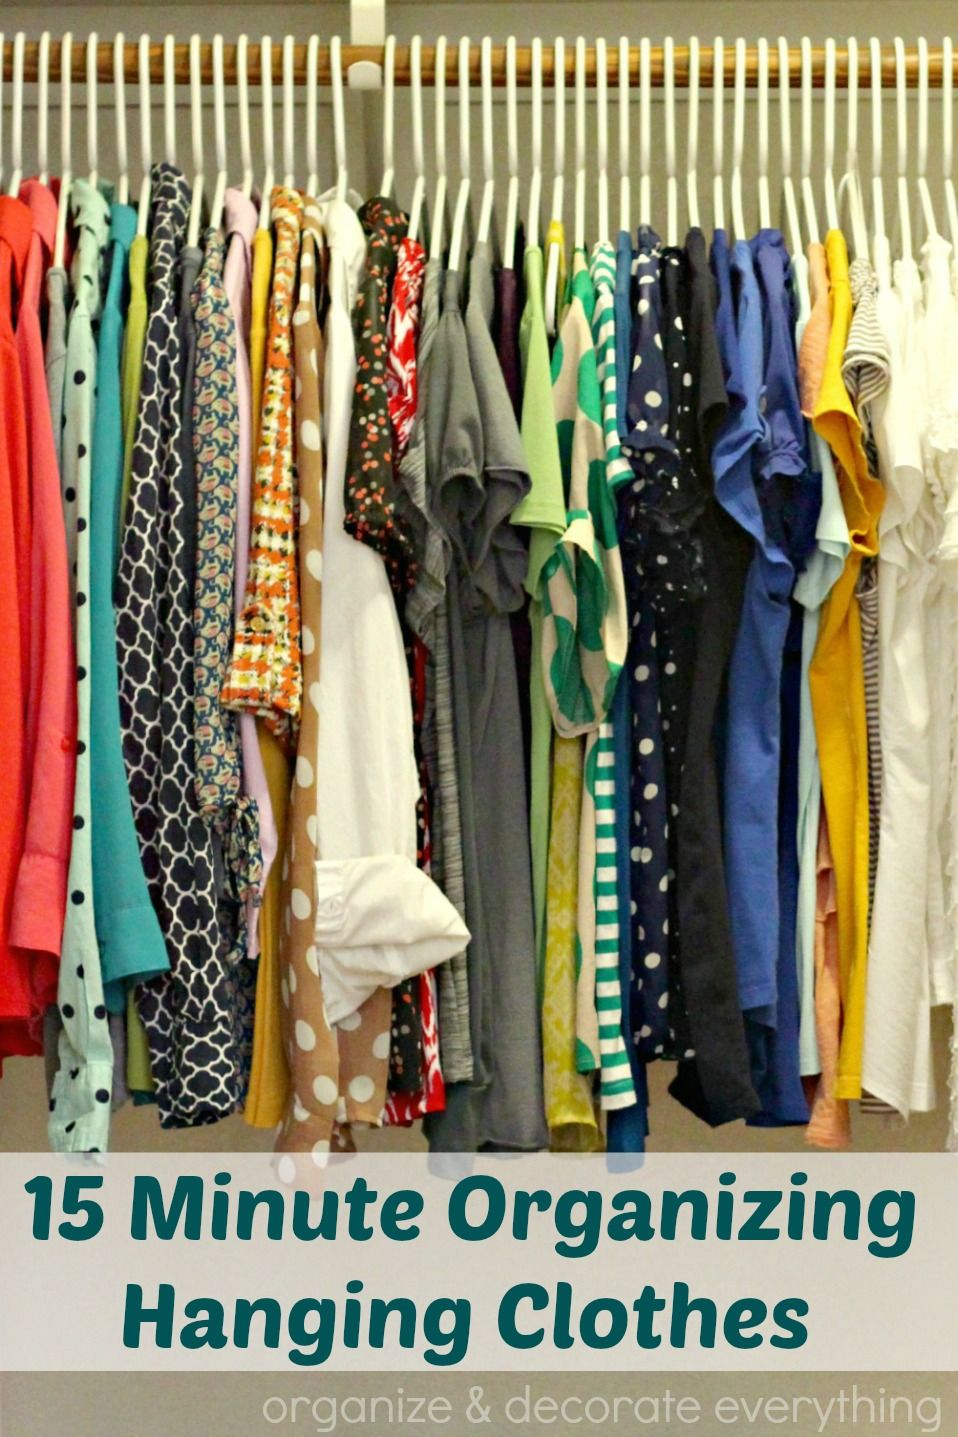 15 Minute Organizing Hanging Clothes Organize And Decorate Everything 31days 15minuteorganizing